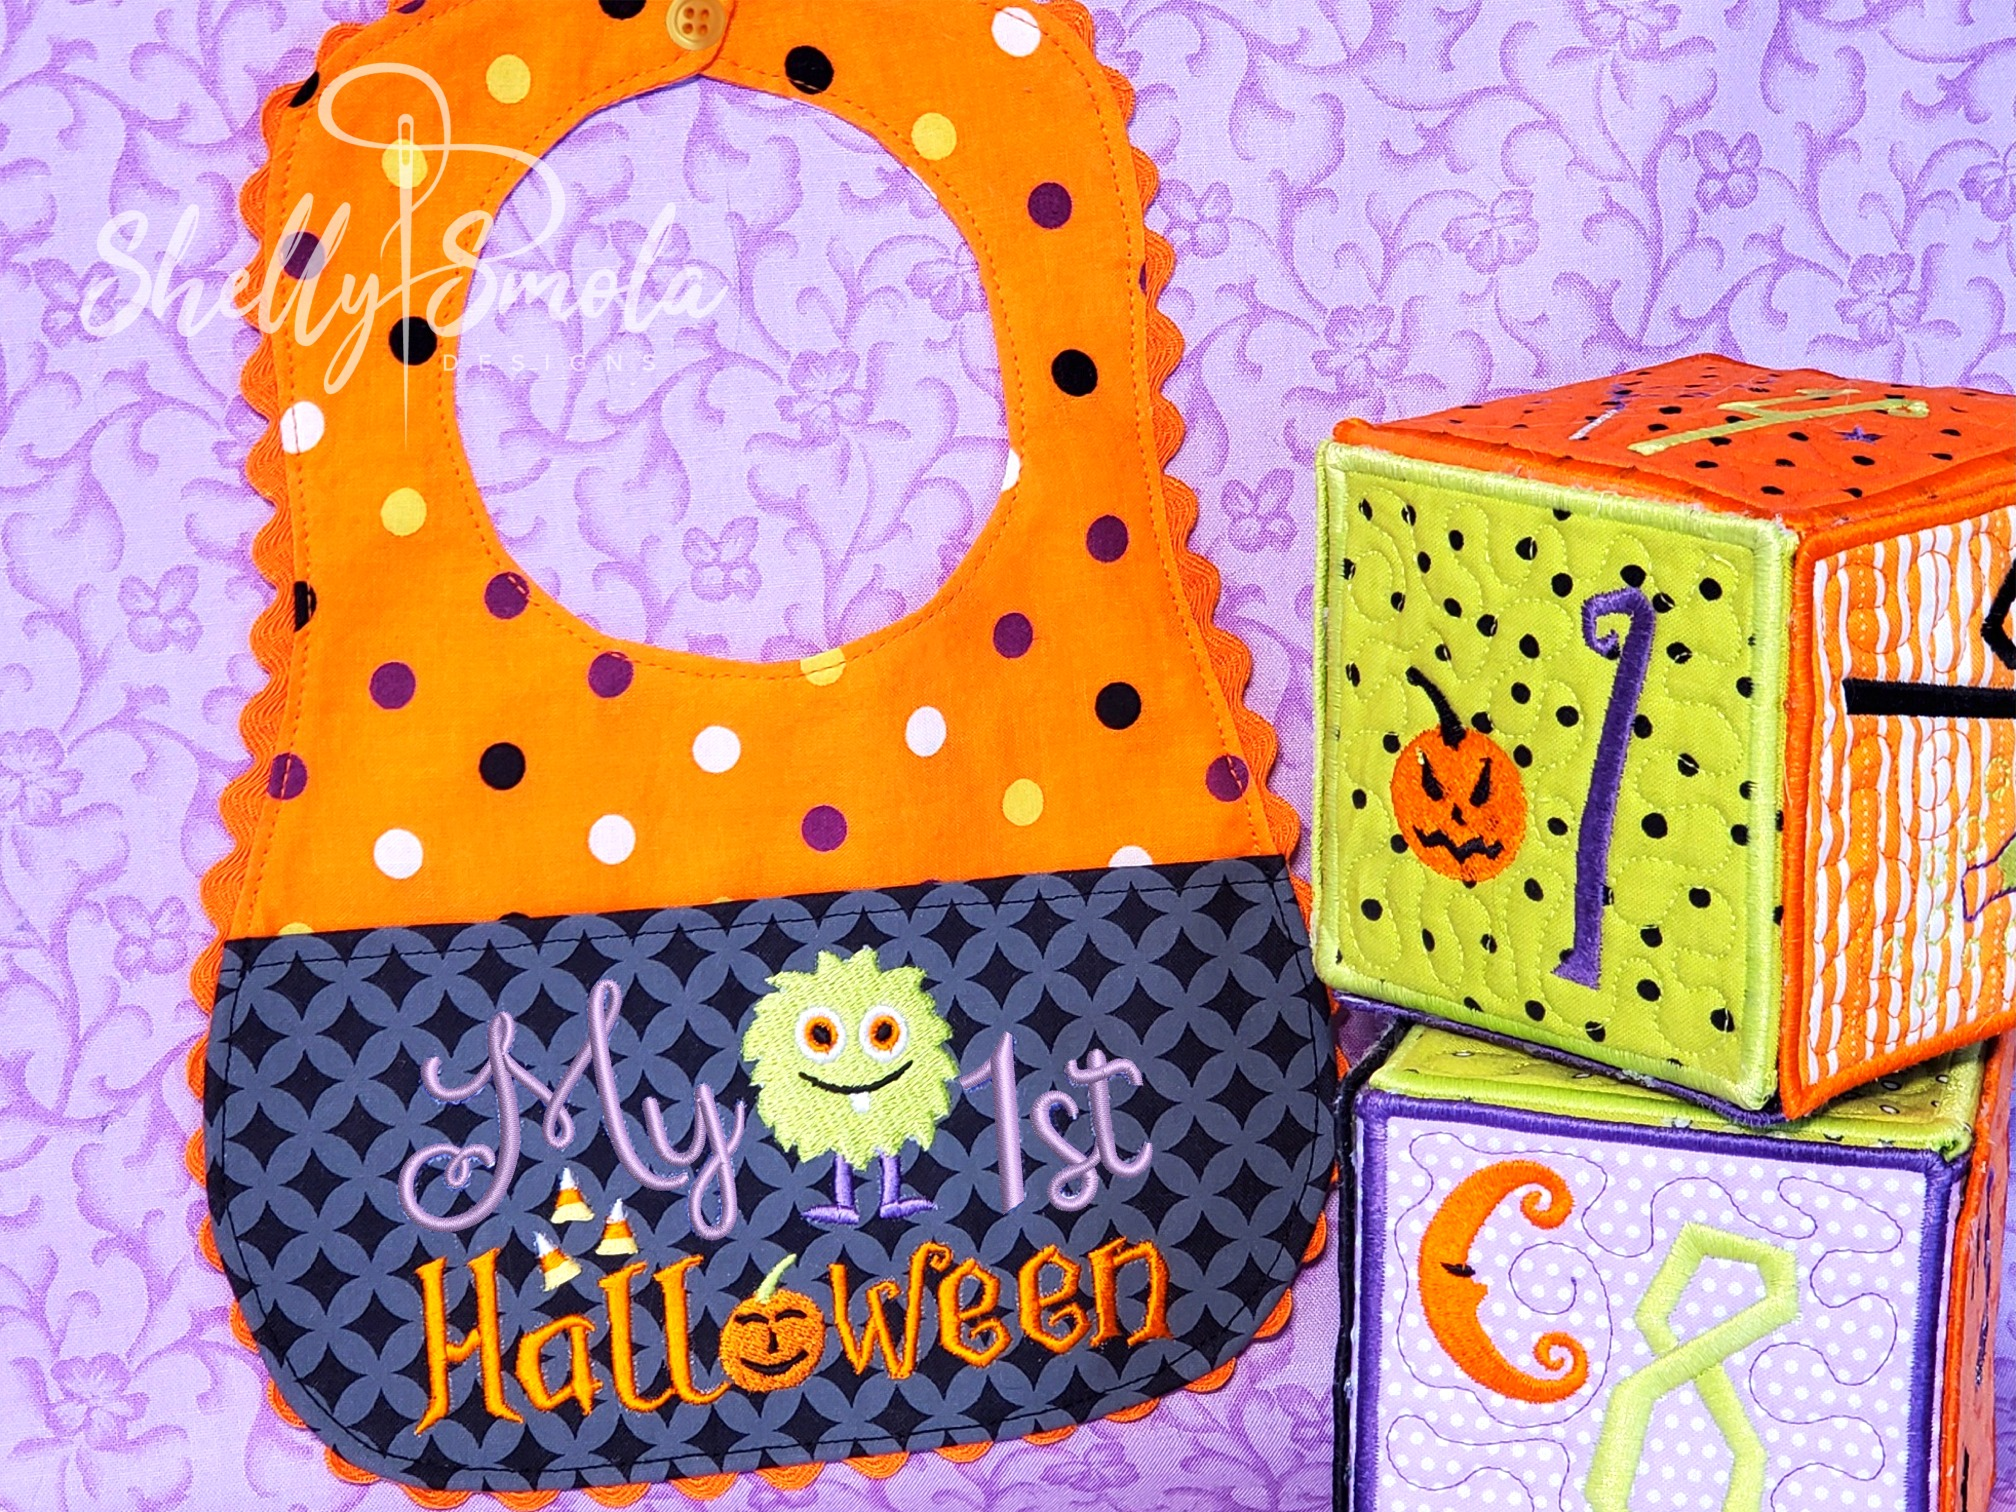 My First Halloween by Shelly Smola